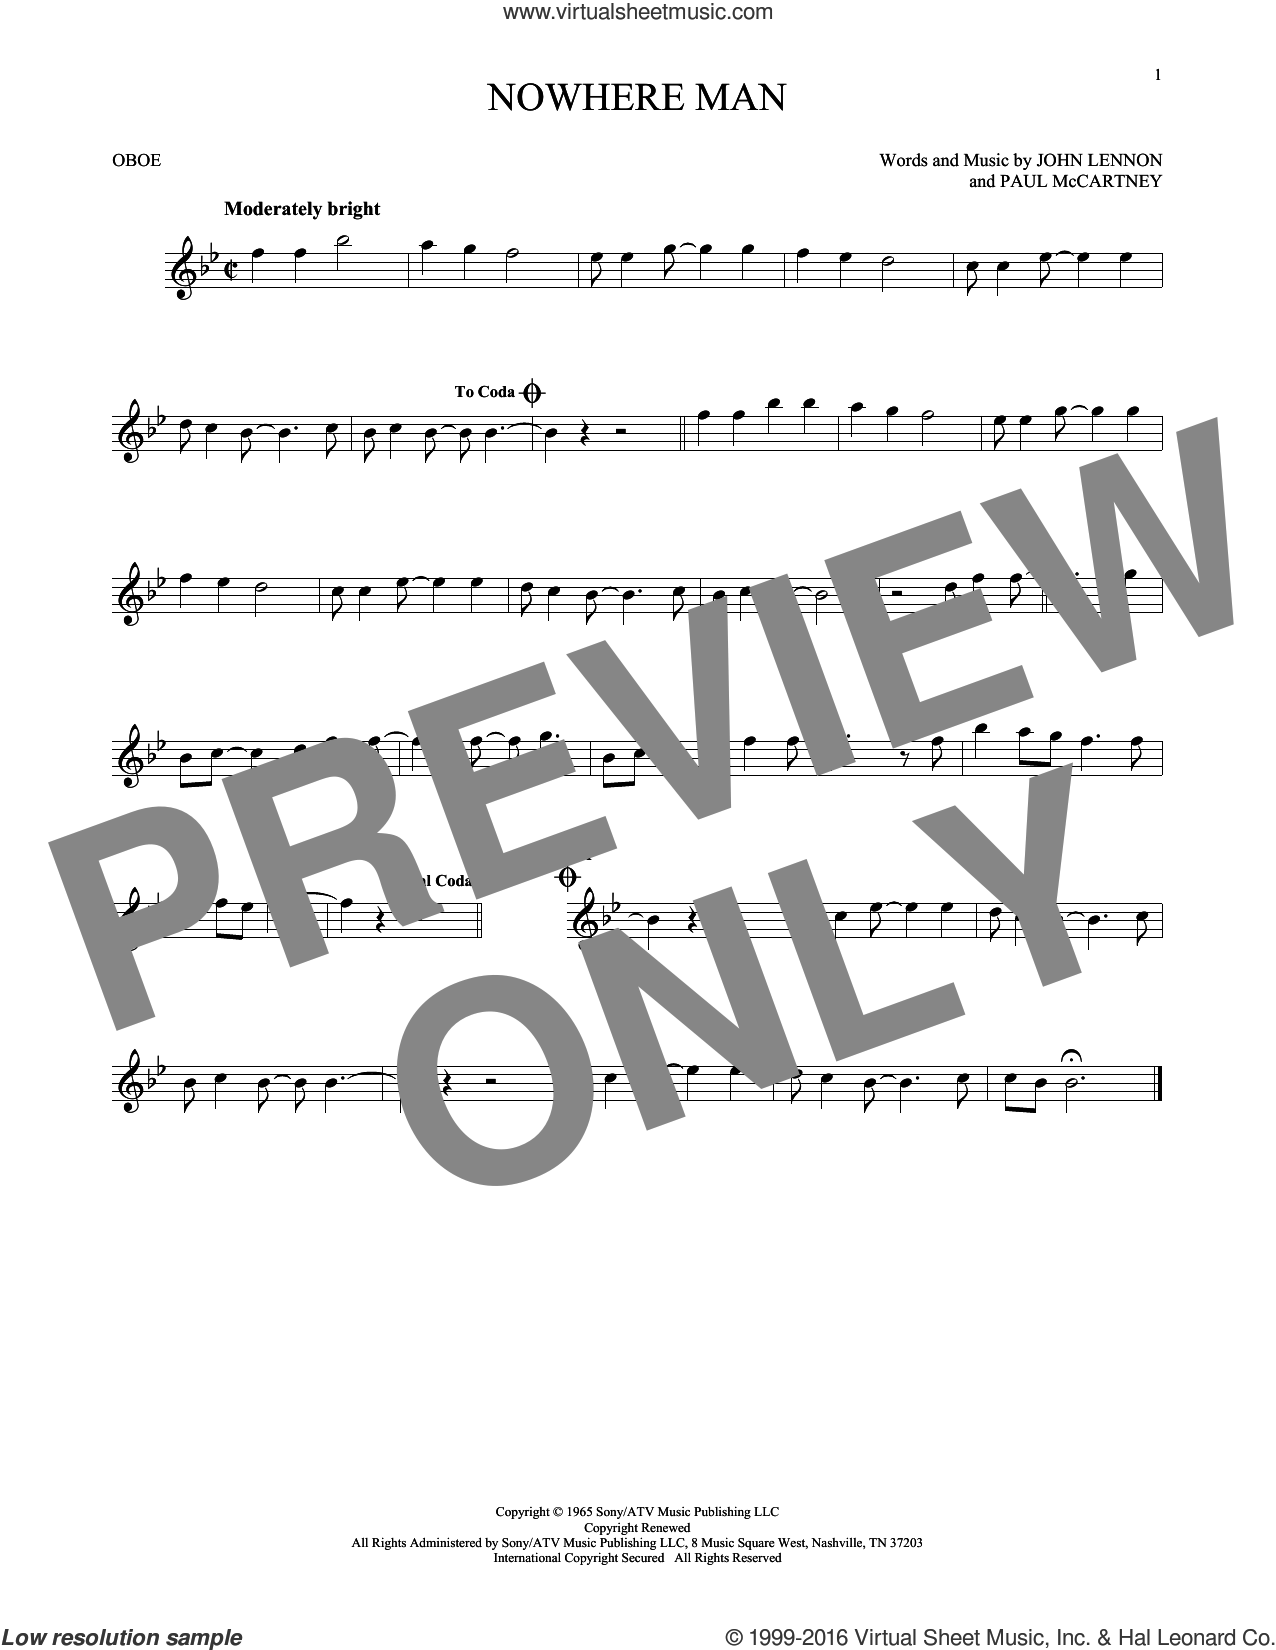 Nowhere Man sheet music for oboe solo by The Beatles, John Lennon and Paul McCartney, intermediate skill level